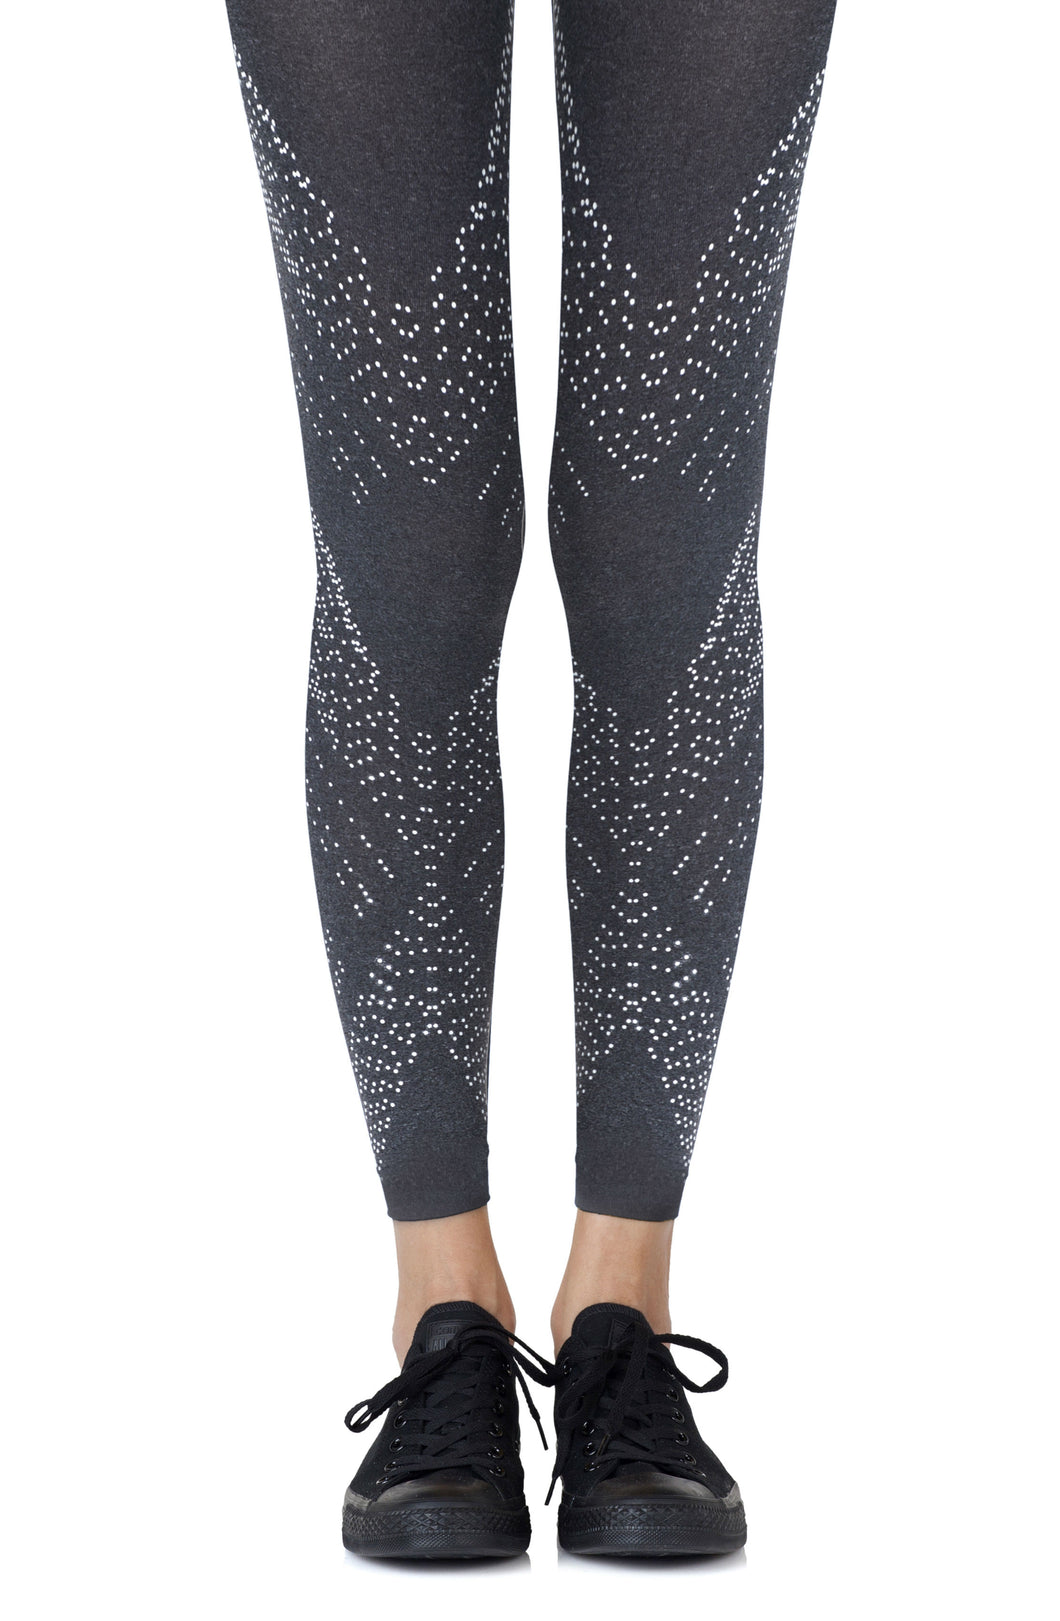 ZOHARA C2HGGR Heather Leggings - Dressed 2 Digress Limited